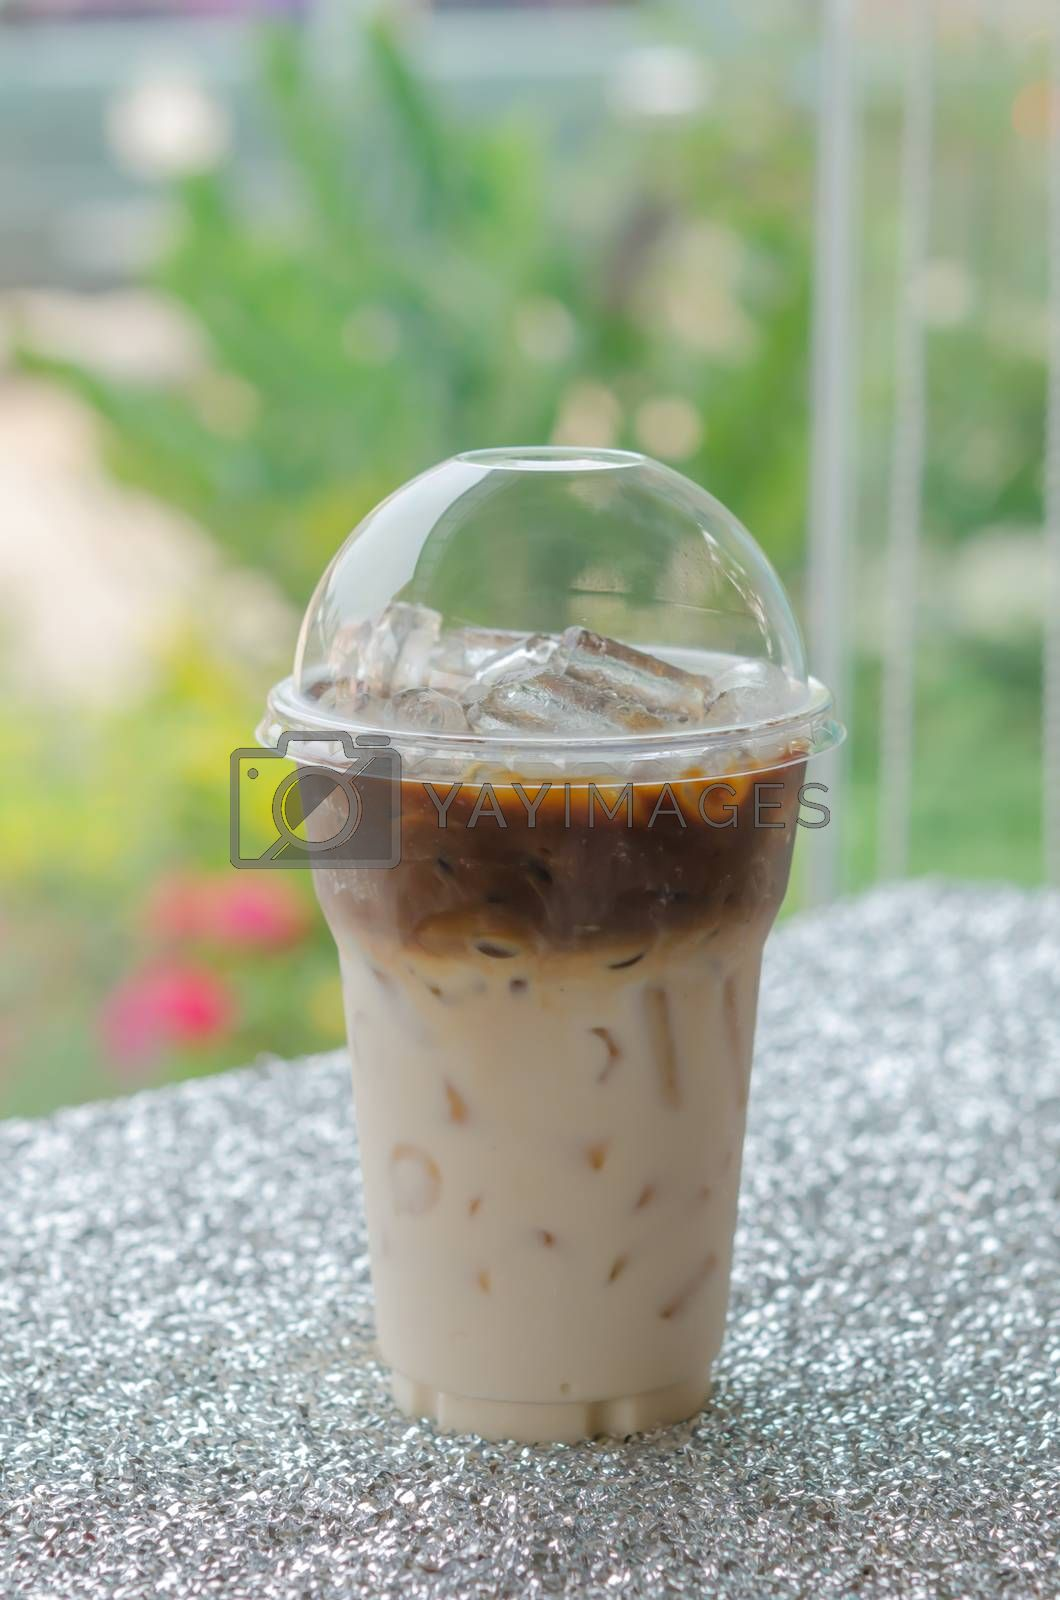 Royalty free image of Iced coffee  for take aways by rakratchada